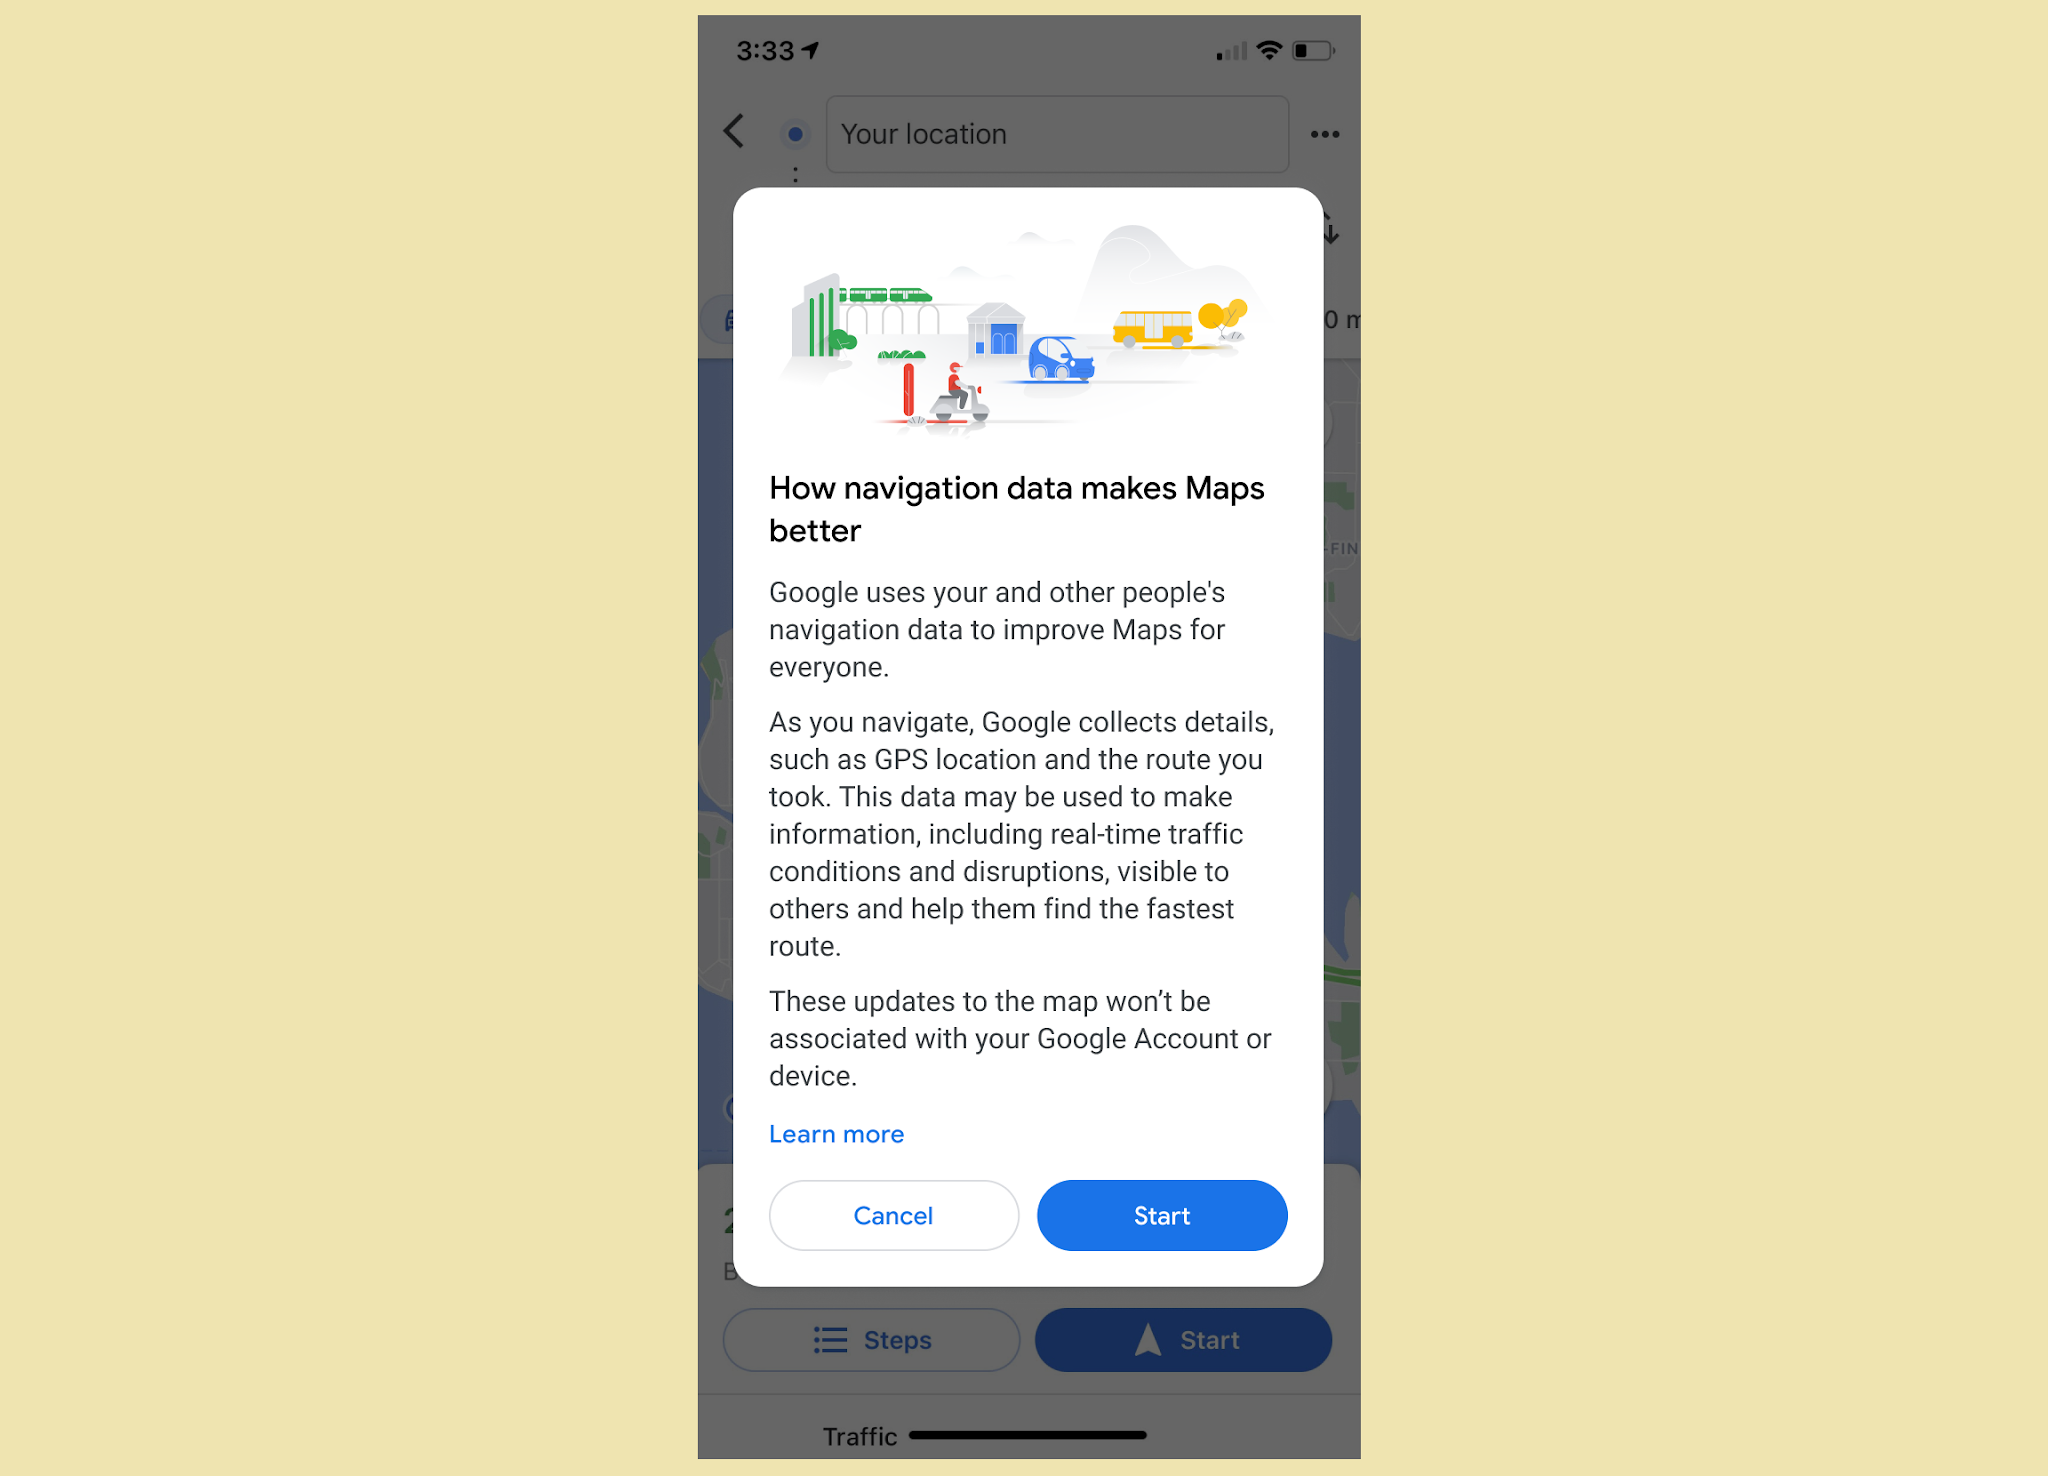 Google Maps Notifies Users Their Data Can Help It In Improving Its Navigation Services